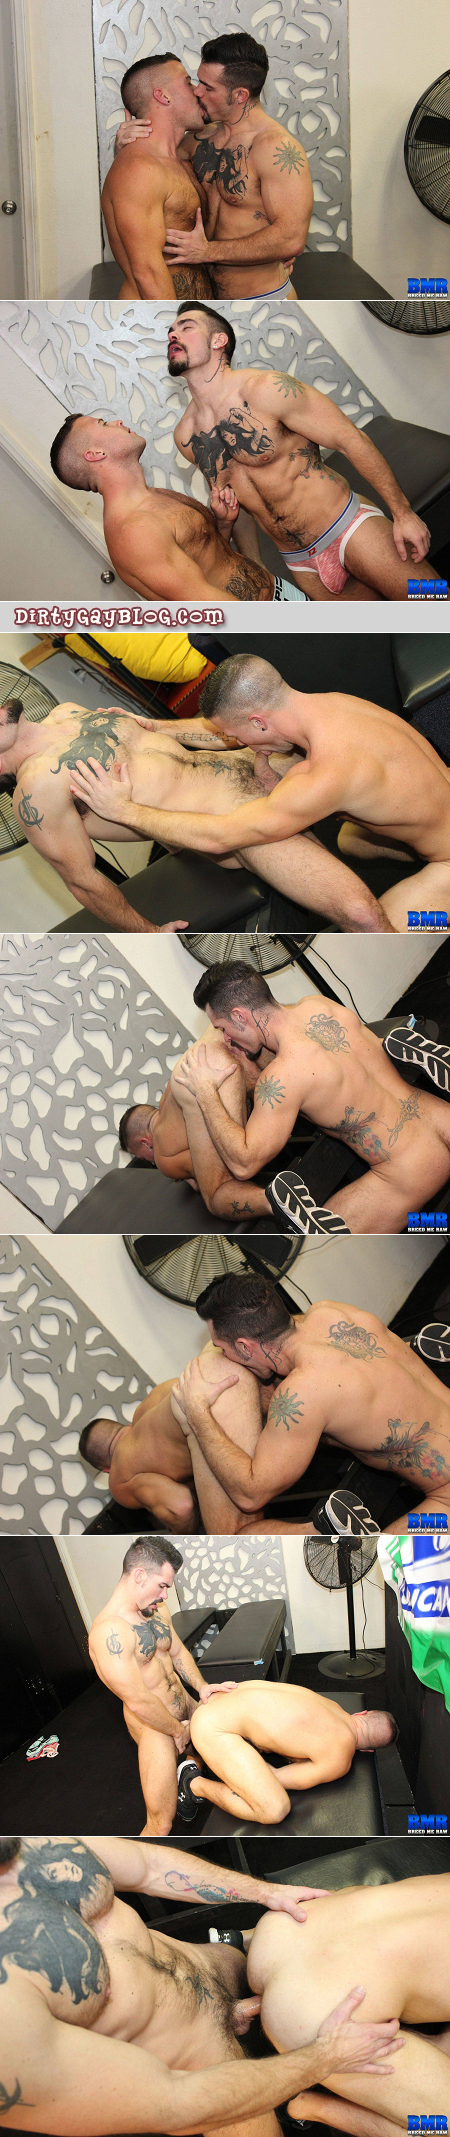 Hairy inked muscle stud fucking another young man bareback.